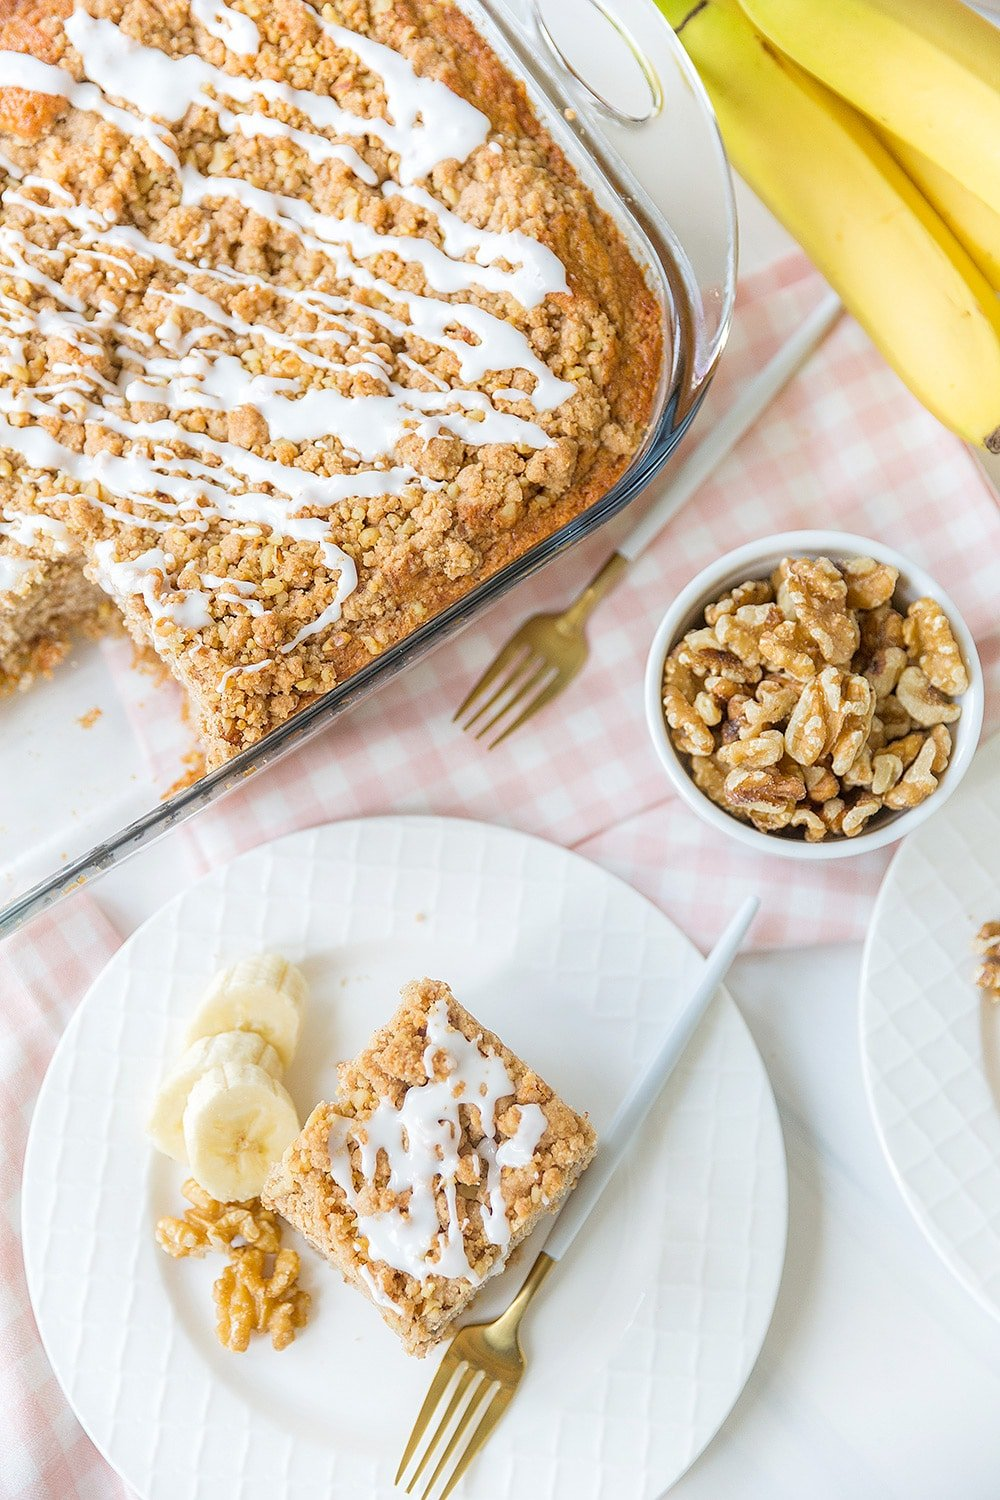 Banana Walnut Crumb Cake - Easy and delicious!